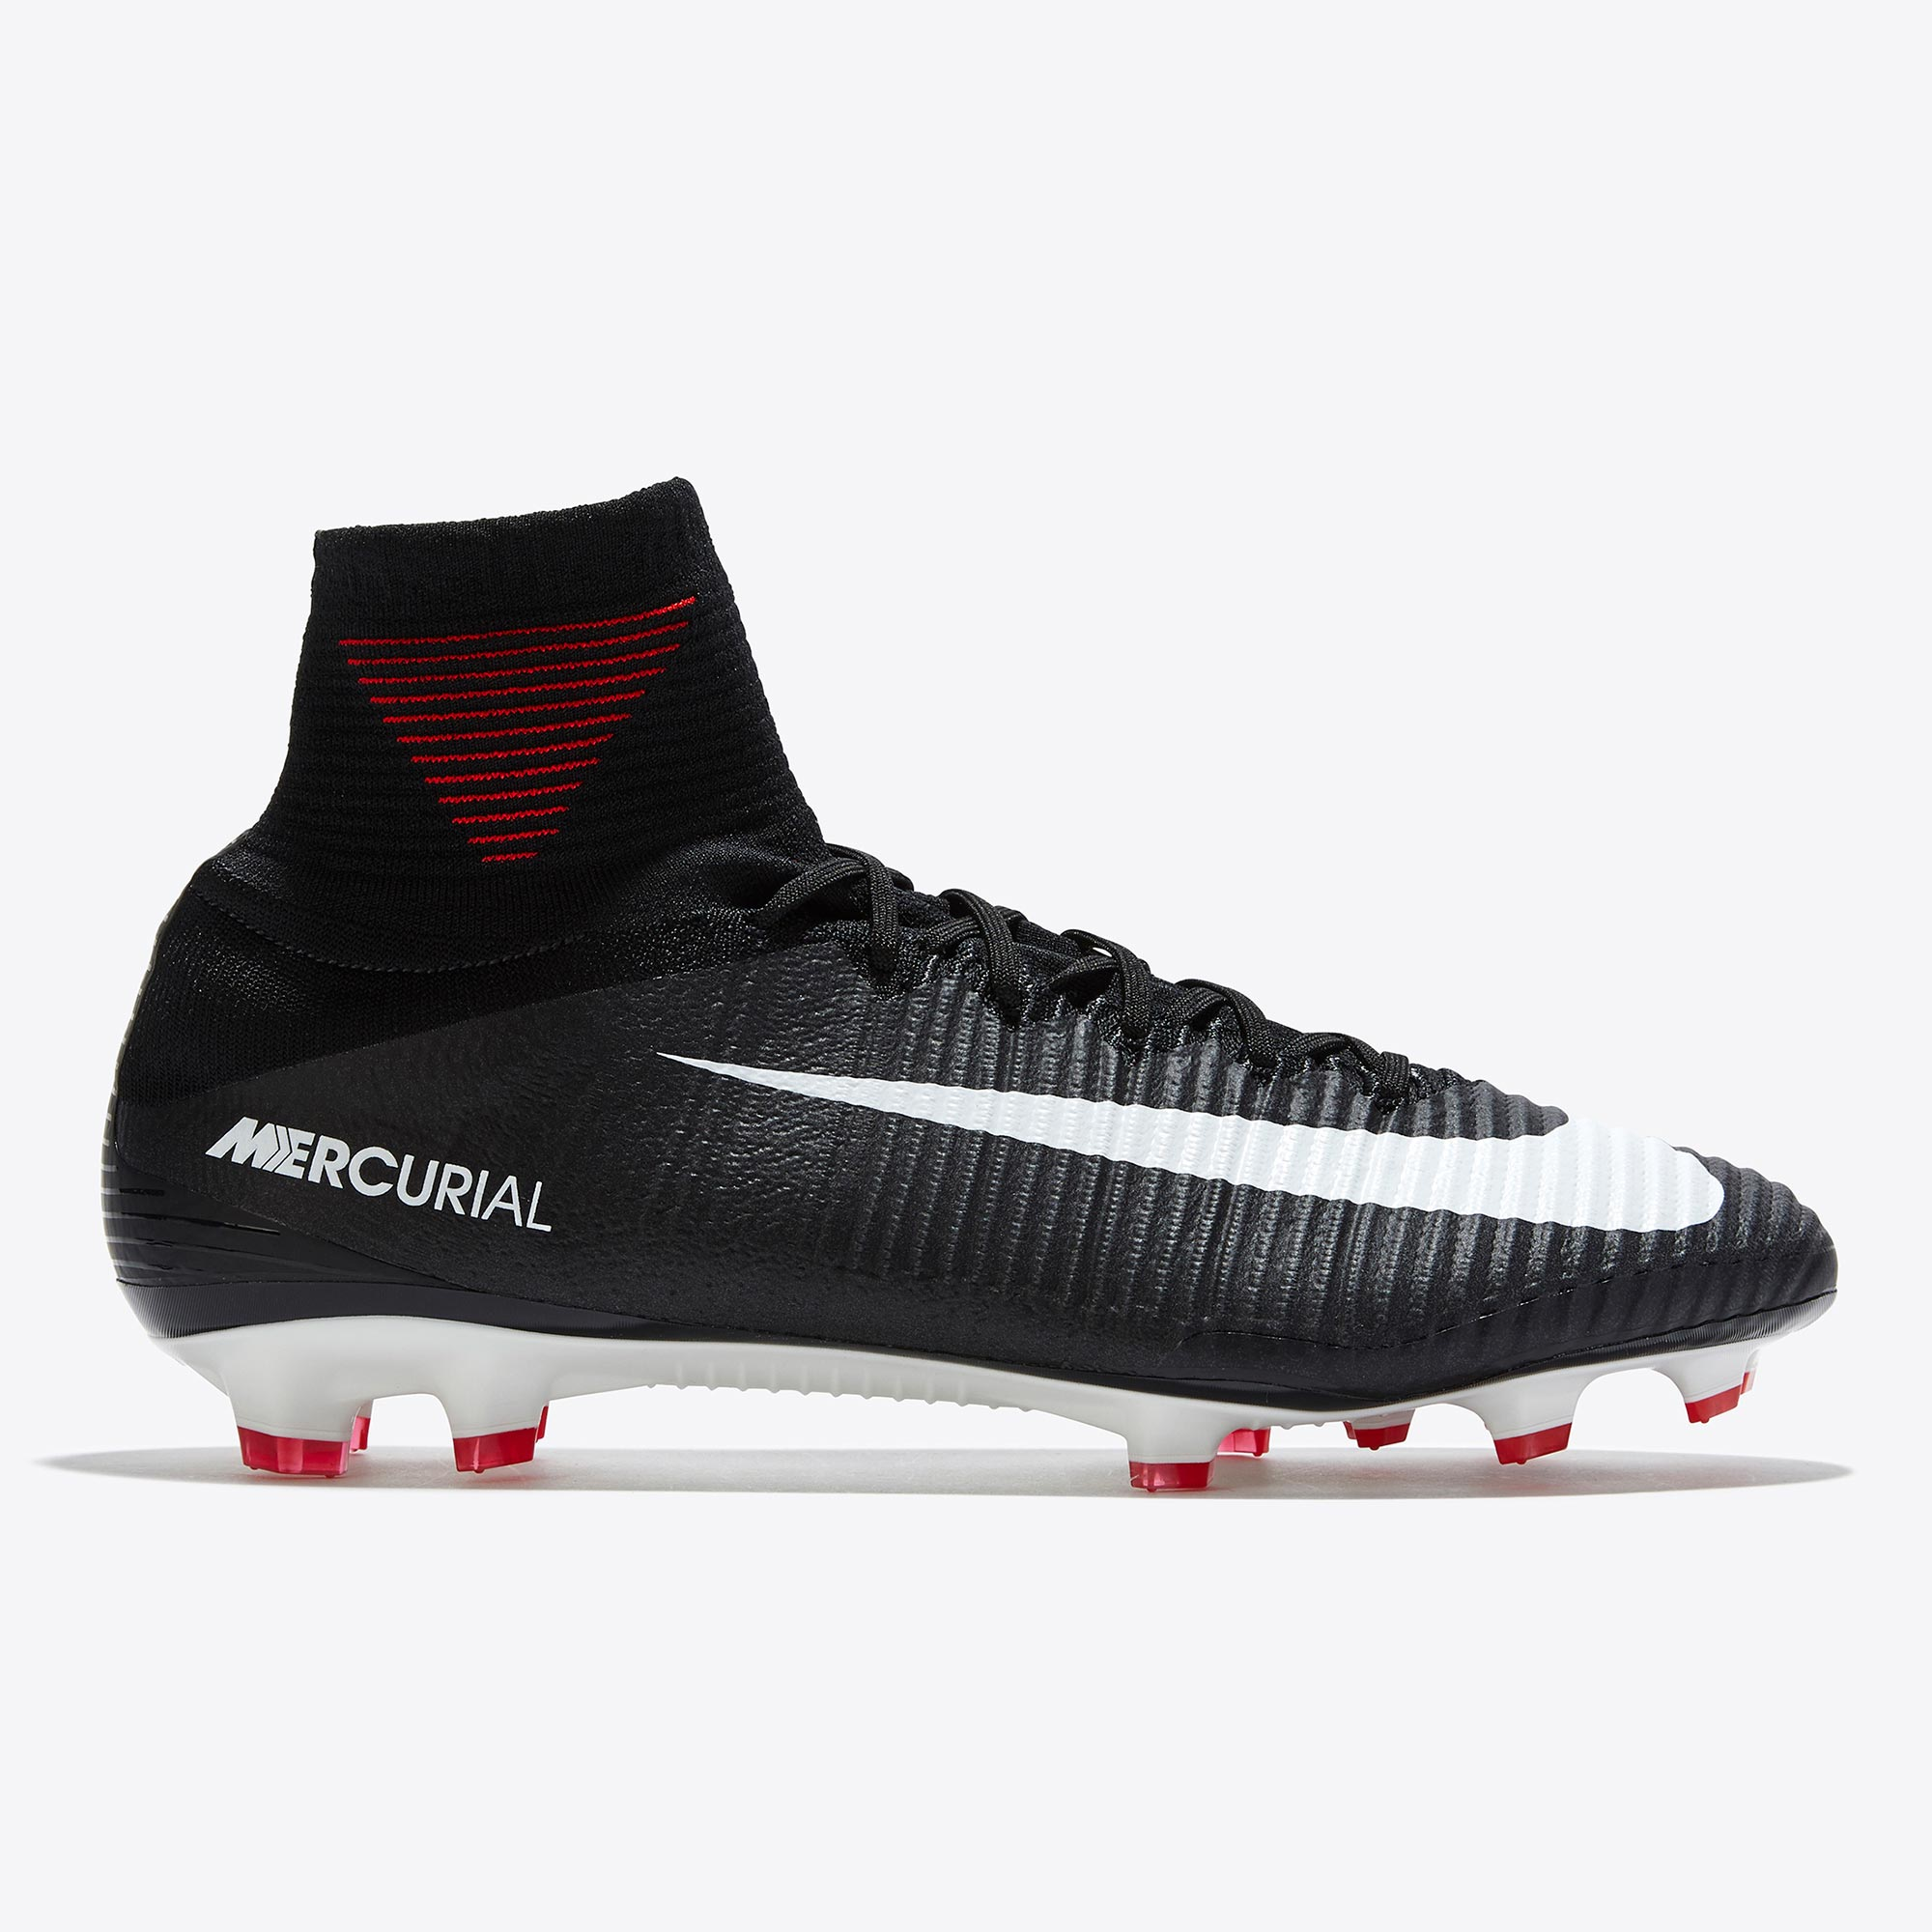 Nike Mercurial Superfly V Firm Ground Football Boots - Black/White/Dar